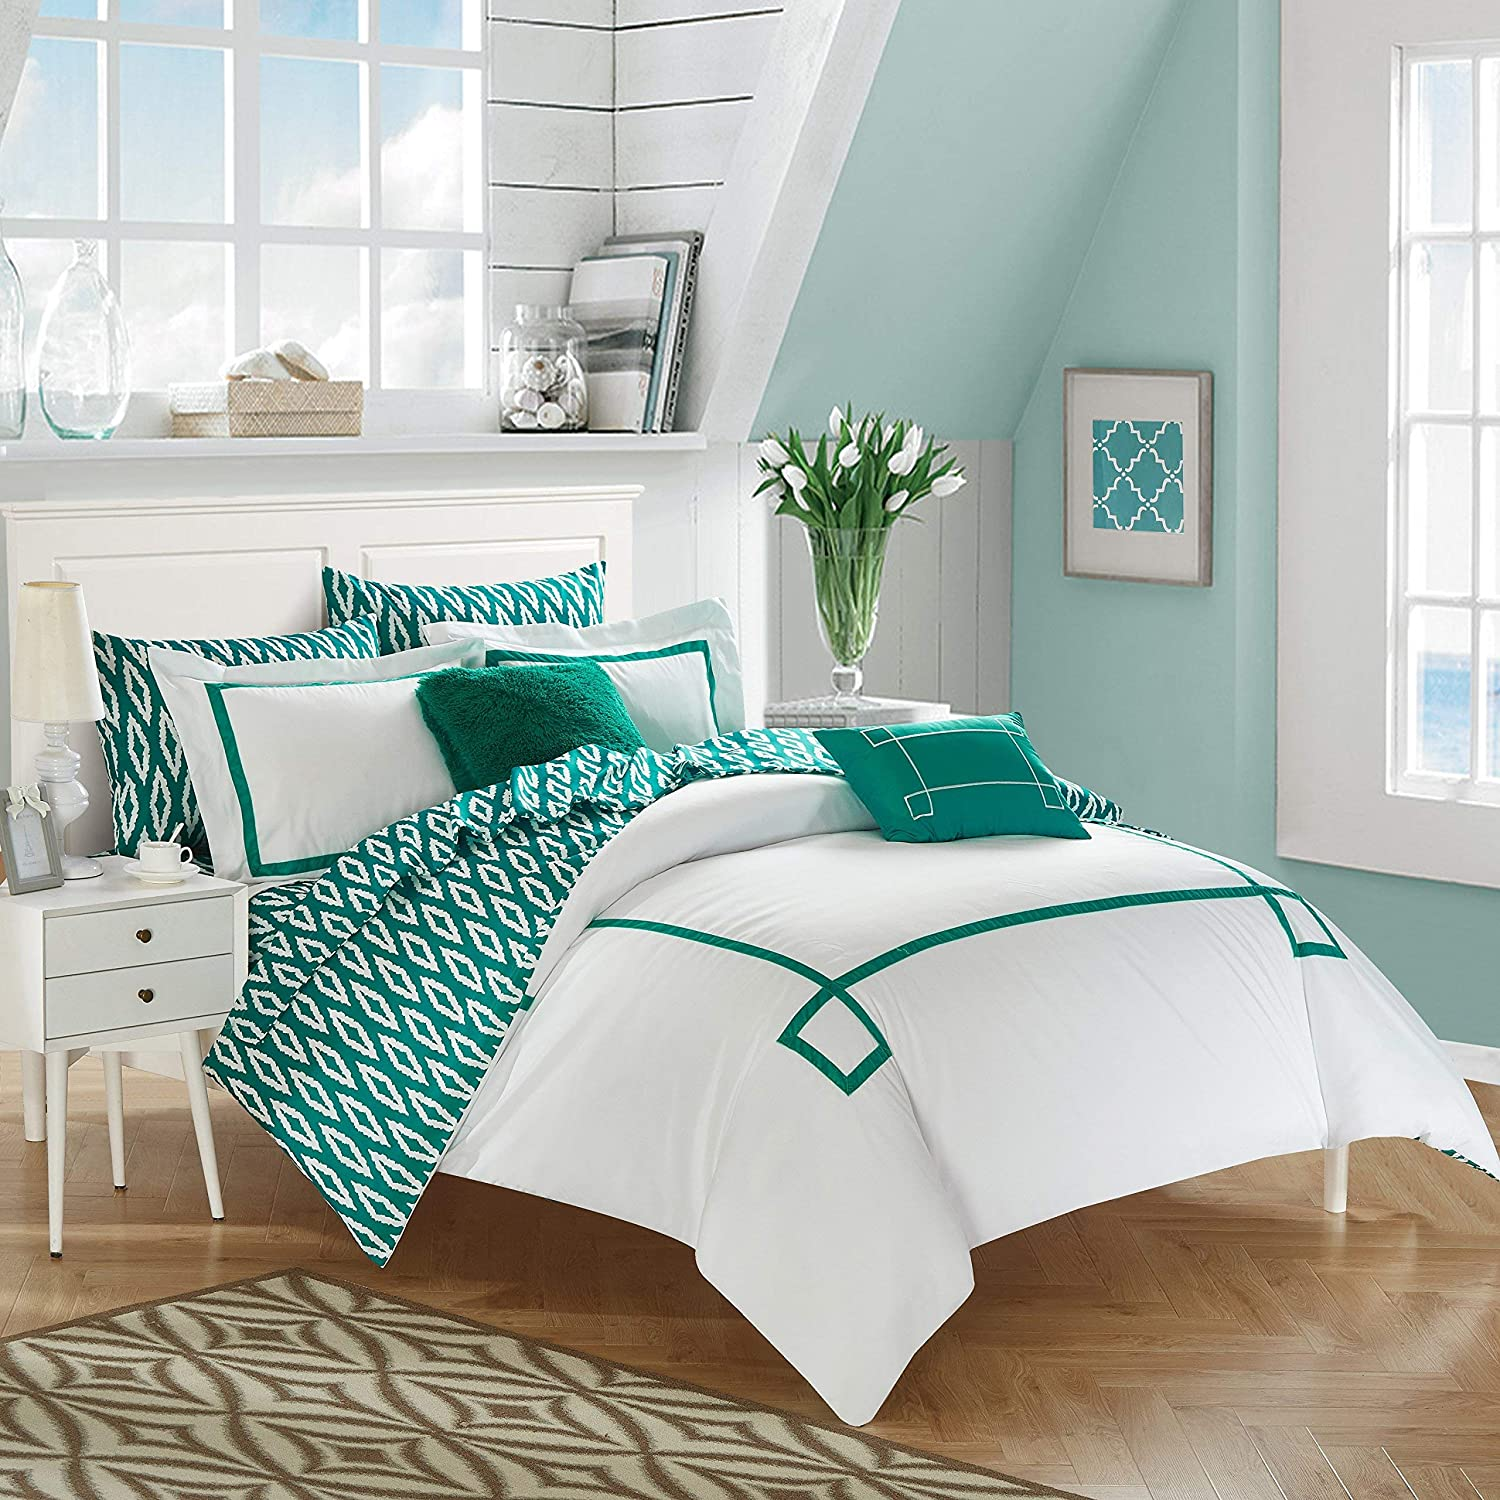 Chic Home 9 Piece Trace Contemporary Greek Key Embroidered Reversible Queen Bed in a Bag Comforter Aqua with Sheet Set